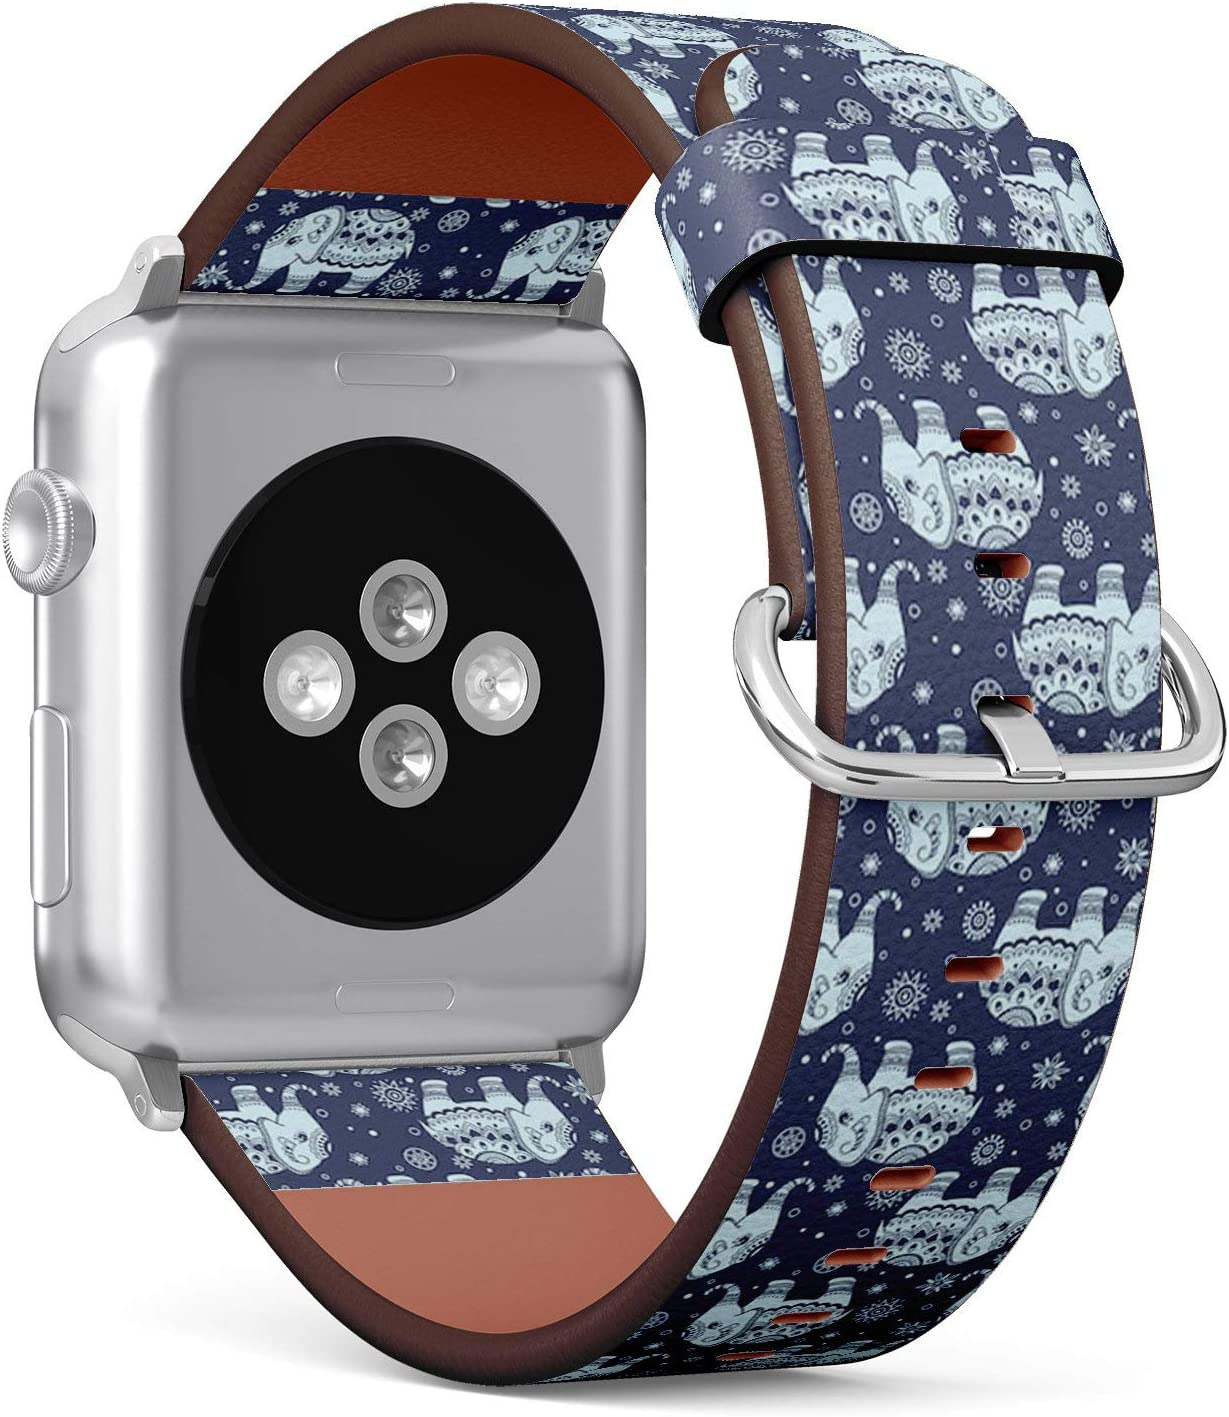 Compatible with Apple Watch 42mm & 44mm (Series 5, 4, 3, 2, 1) Leather Watch Wrist Band Strap Bracelet with Stainless Steel Clasp and Adapters (Tribal Elephant)